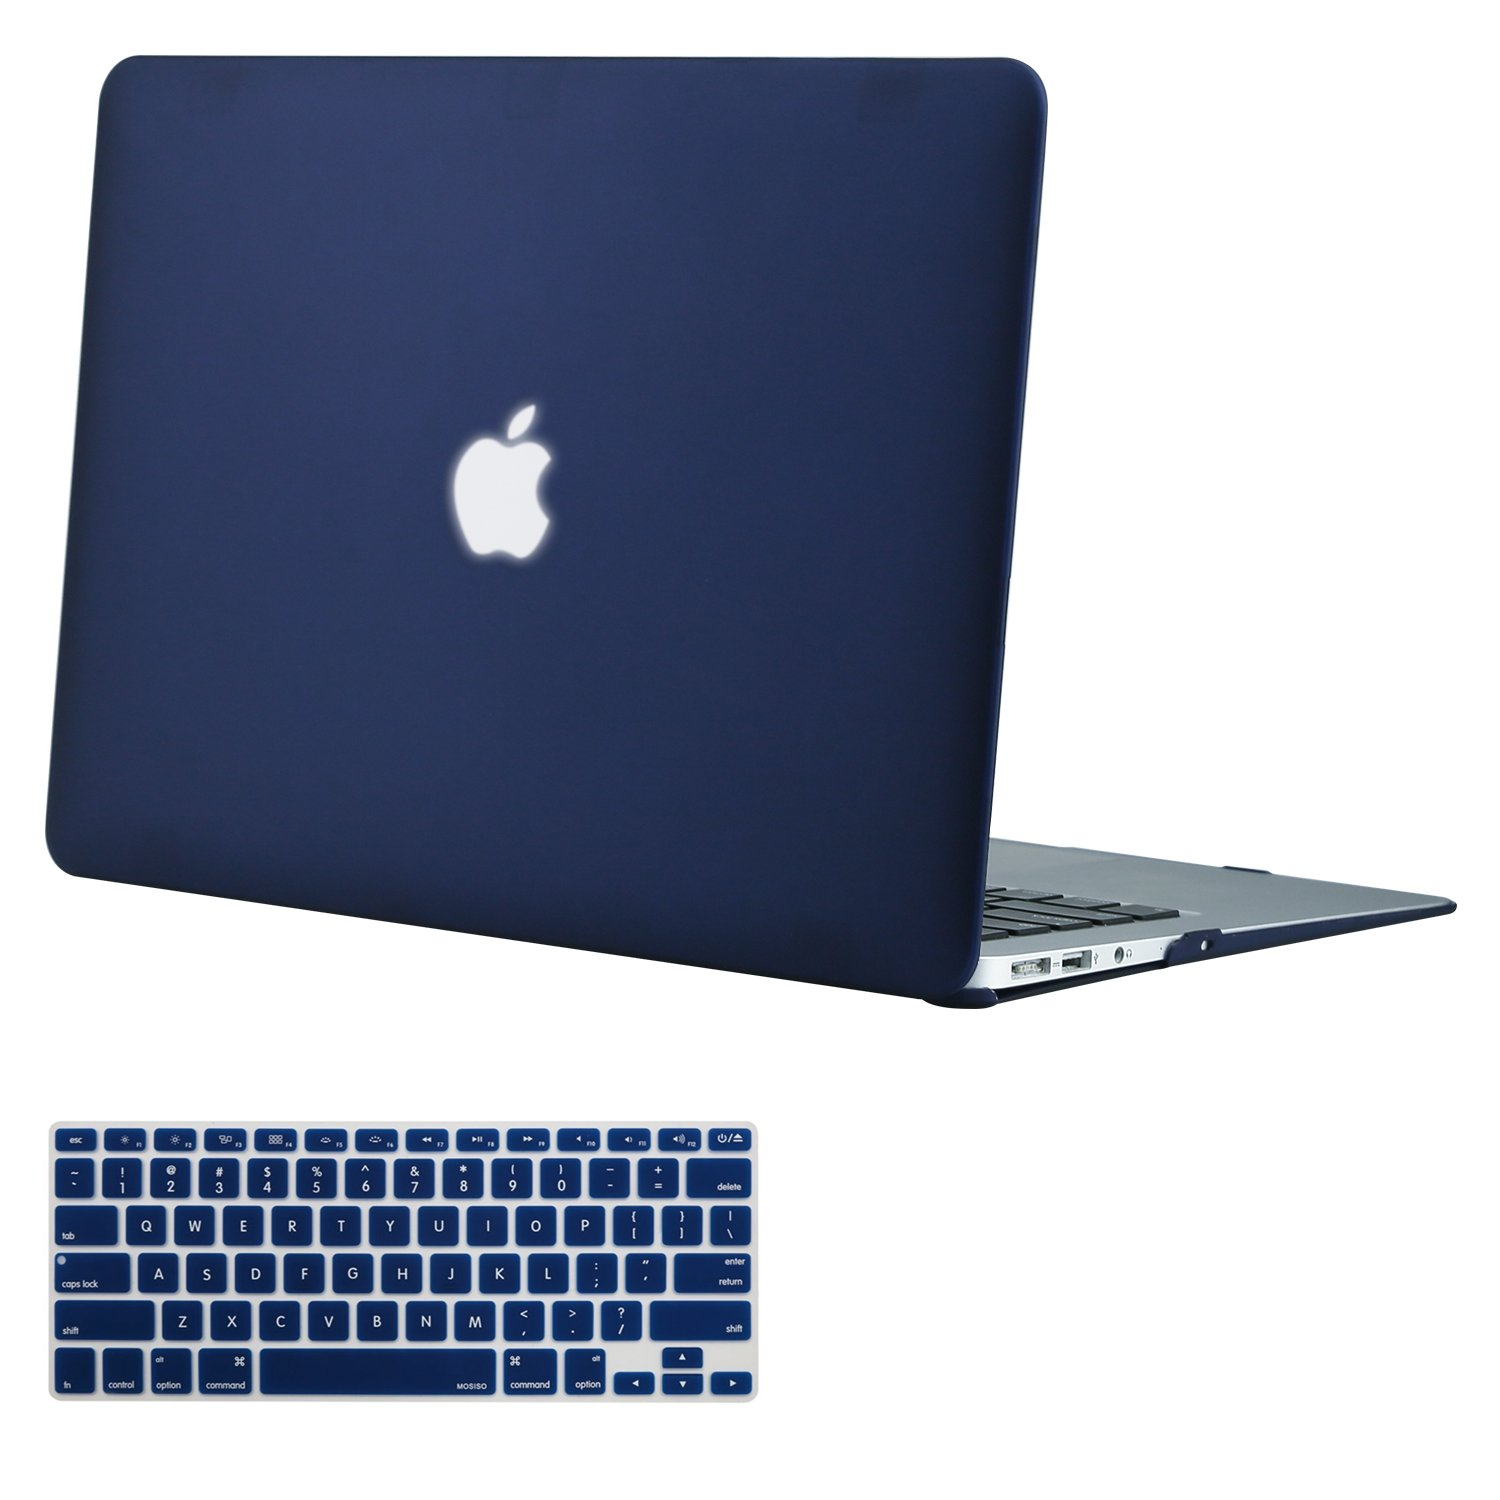 huge selection of eaa89 d2b78 Details about Mosiso Plastic Hard Shell Case with Keyboard Cover for  MacBook Air 13 Inch...